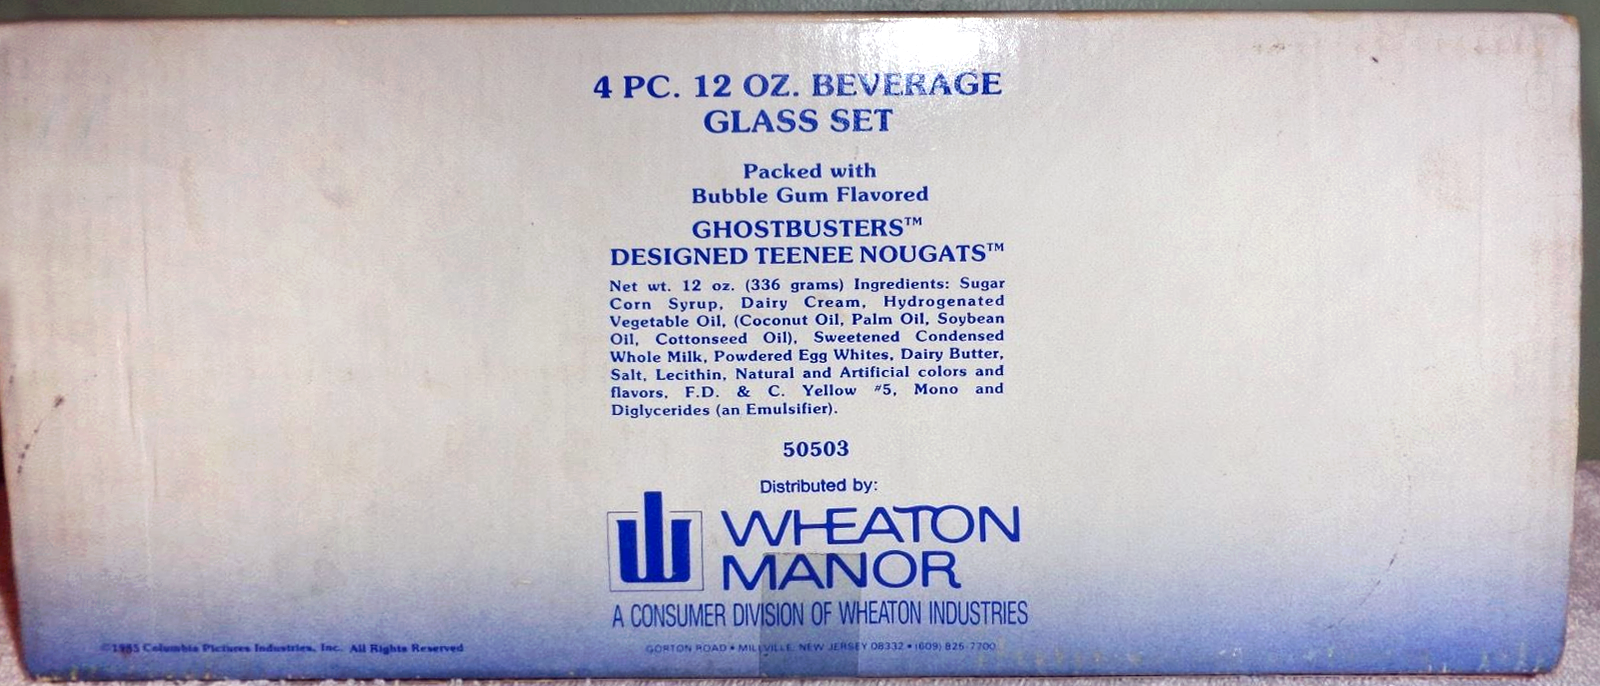 Wheaton Manor Ghostbusters related glass products with edible contents